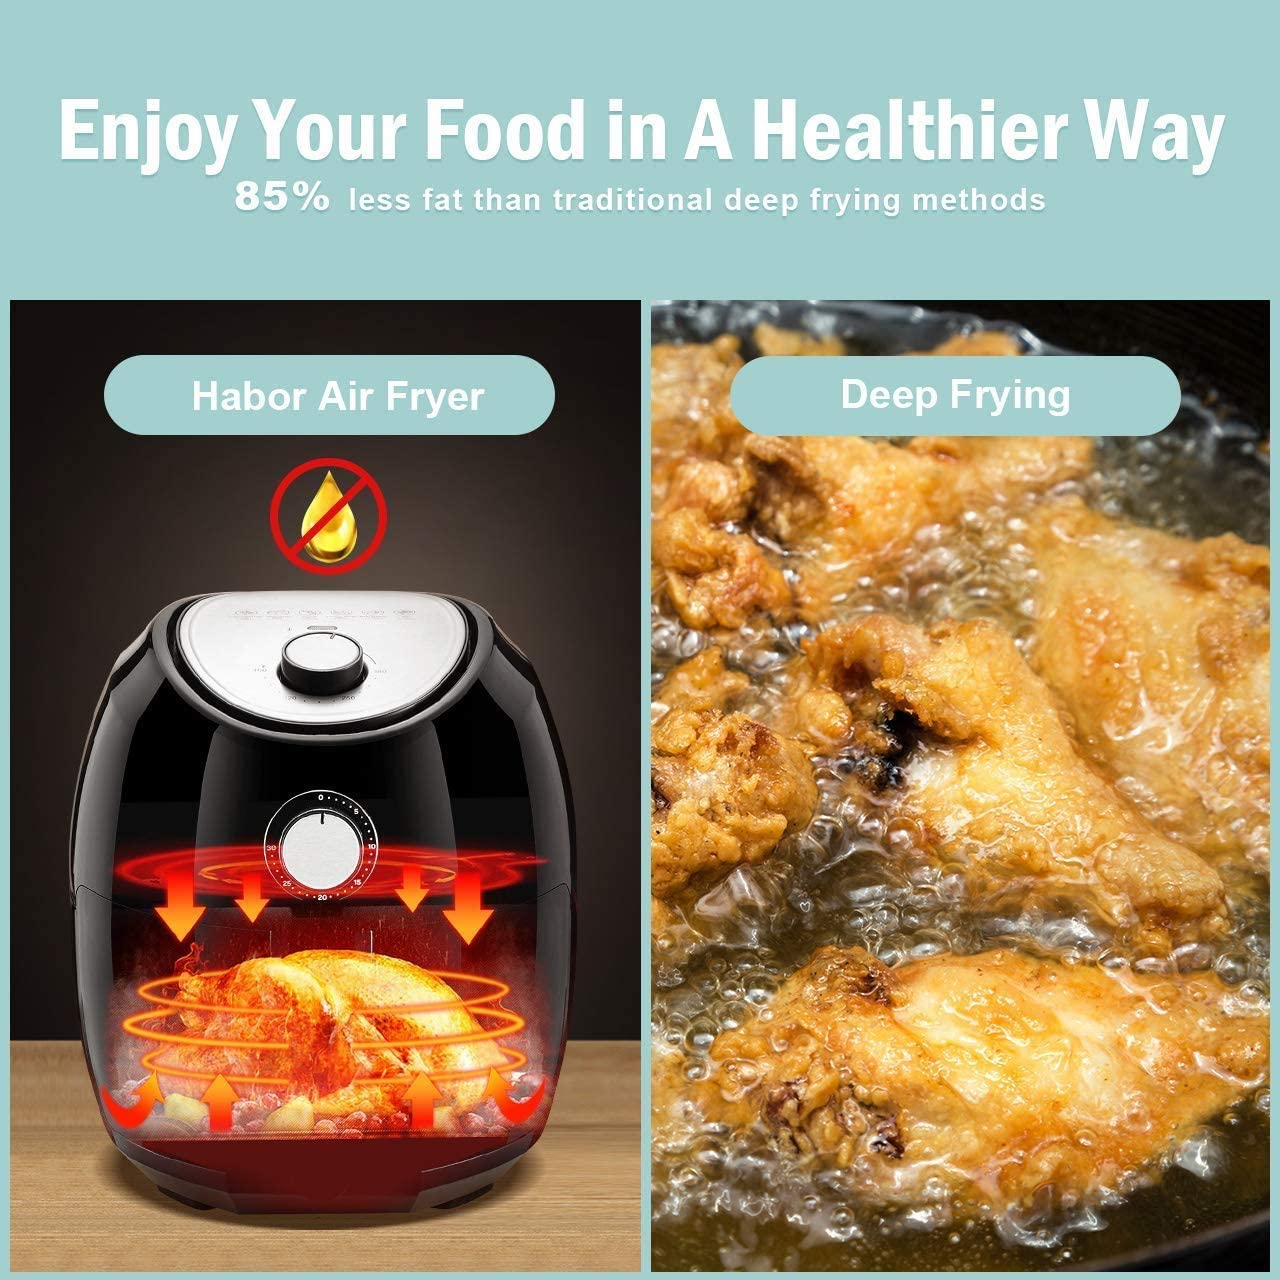 71a2beo5seL. AC SL1280 Habor 4QT 1500W Hot Air Fryer Oven Review